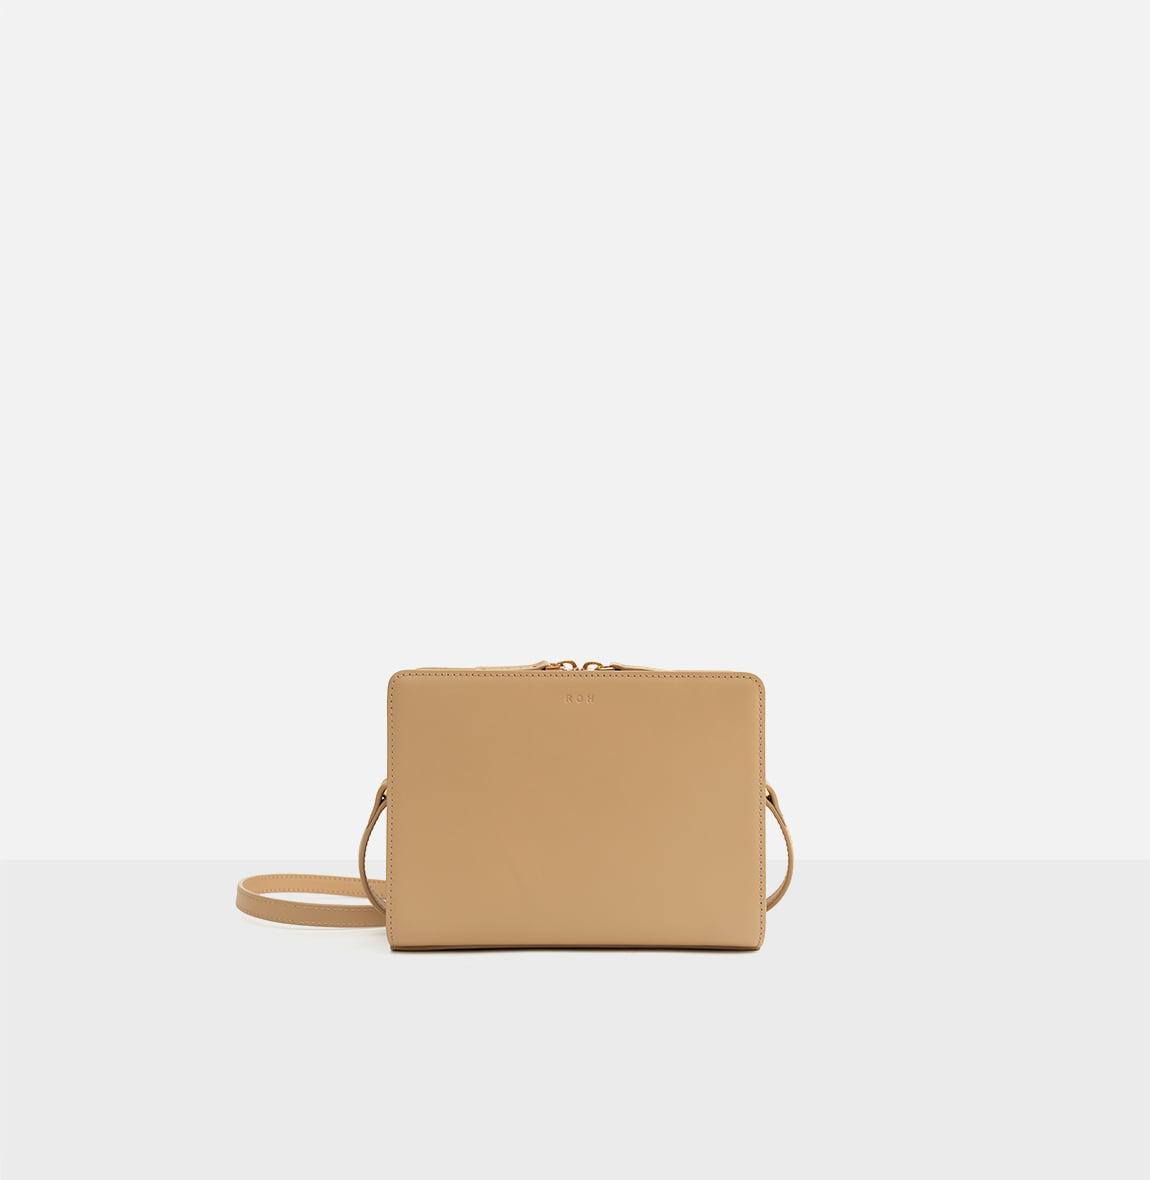 [한정기간10%할인] ROH Mini square bag Light ocher